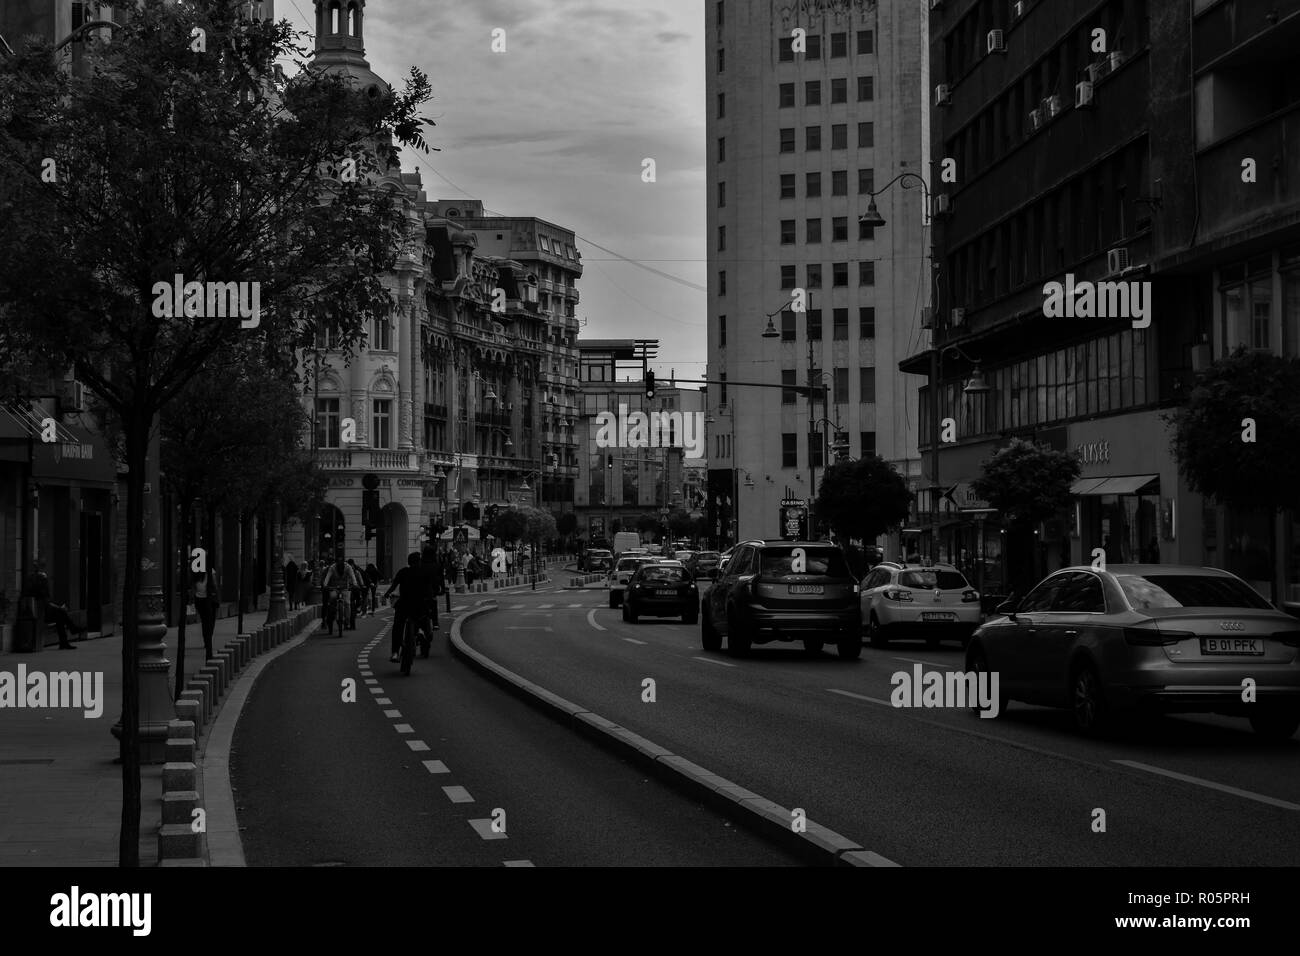 Busy street in Bucharest - Stock Image